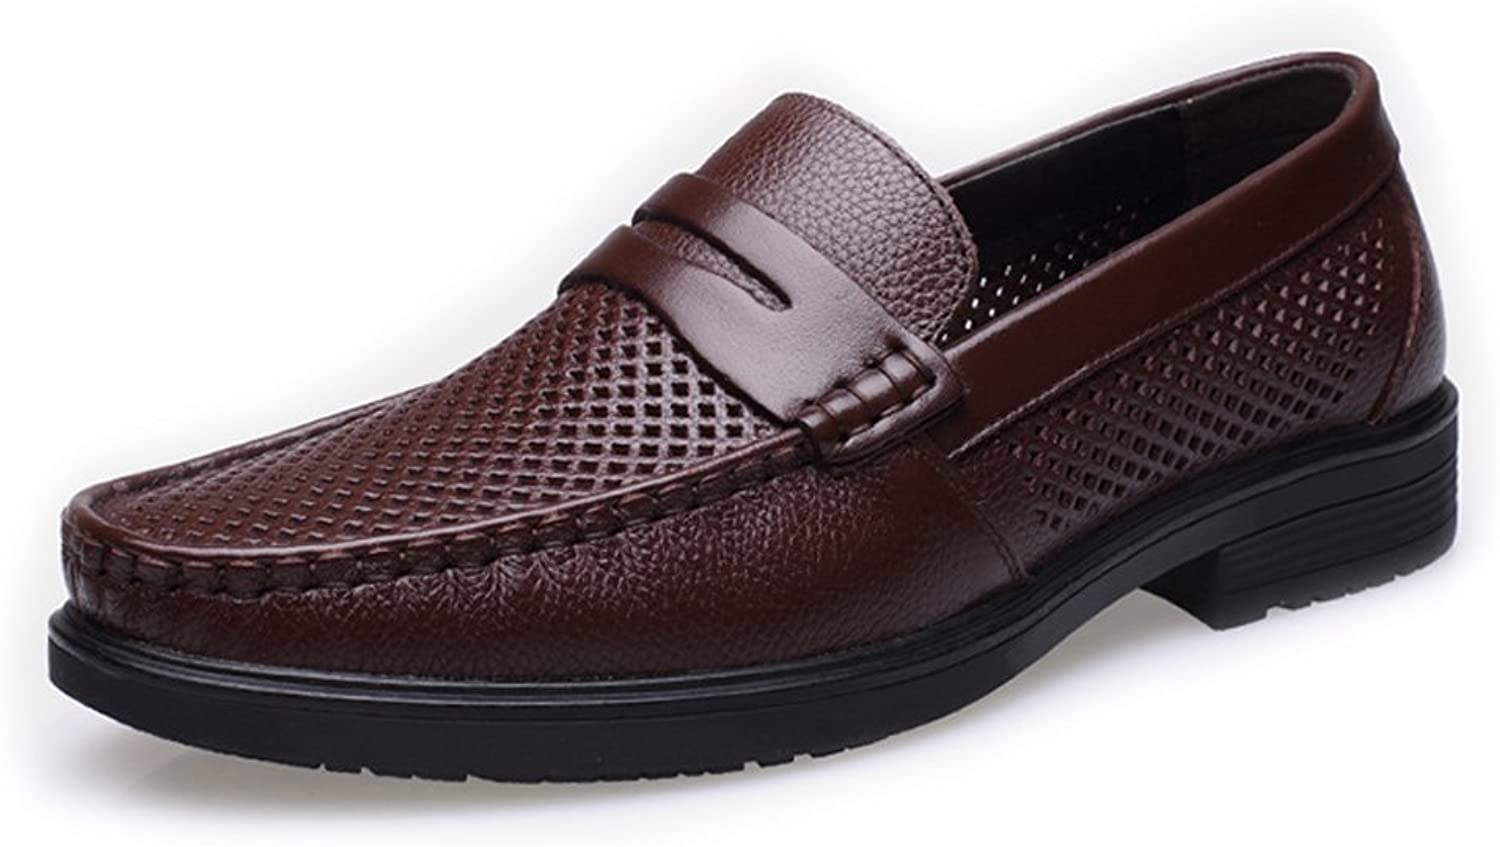 CHENXD shoes, Men's Classic Genuine Cowhide Leather shoes Breathable Perforation Slip-on Flat Soft Sole Lined Loafer